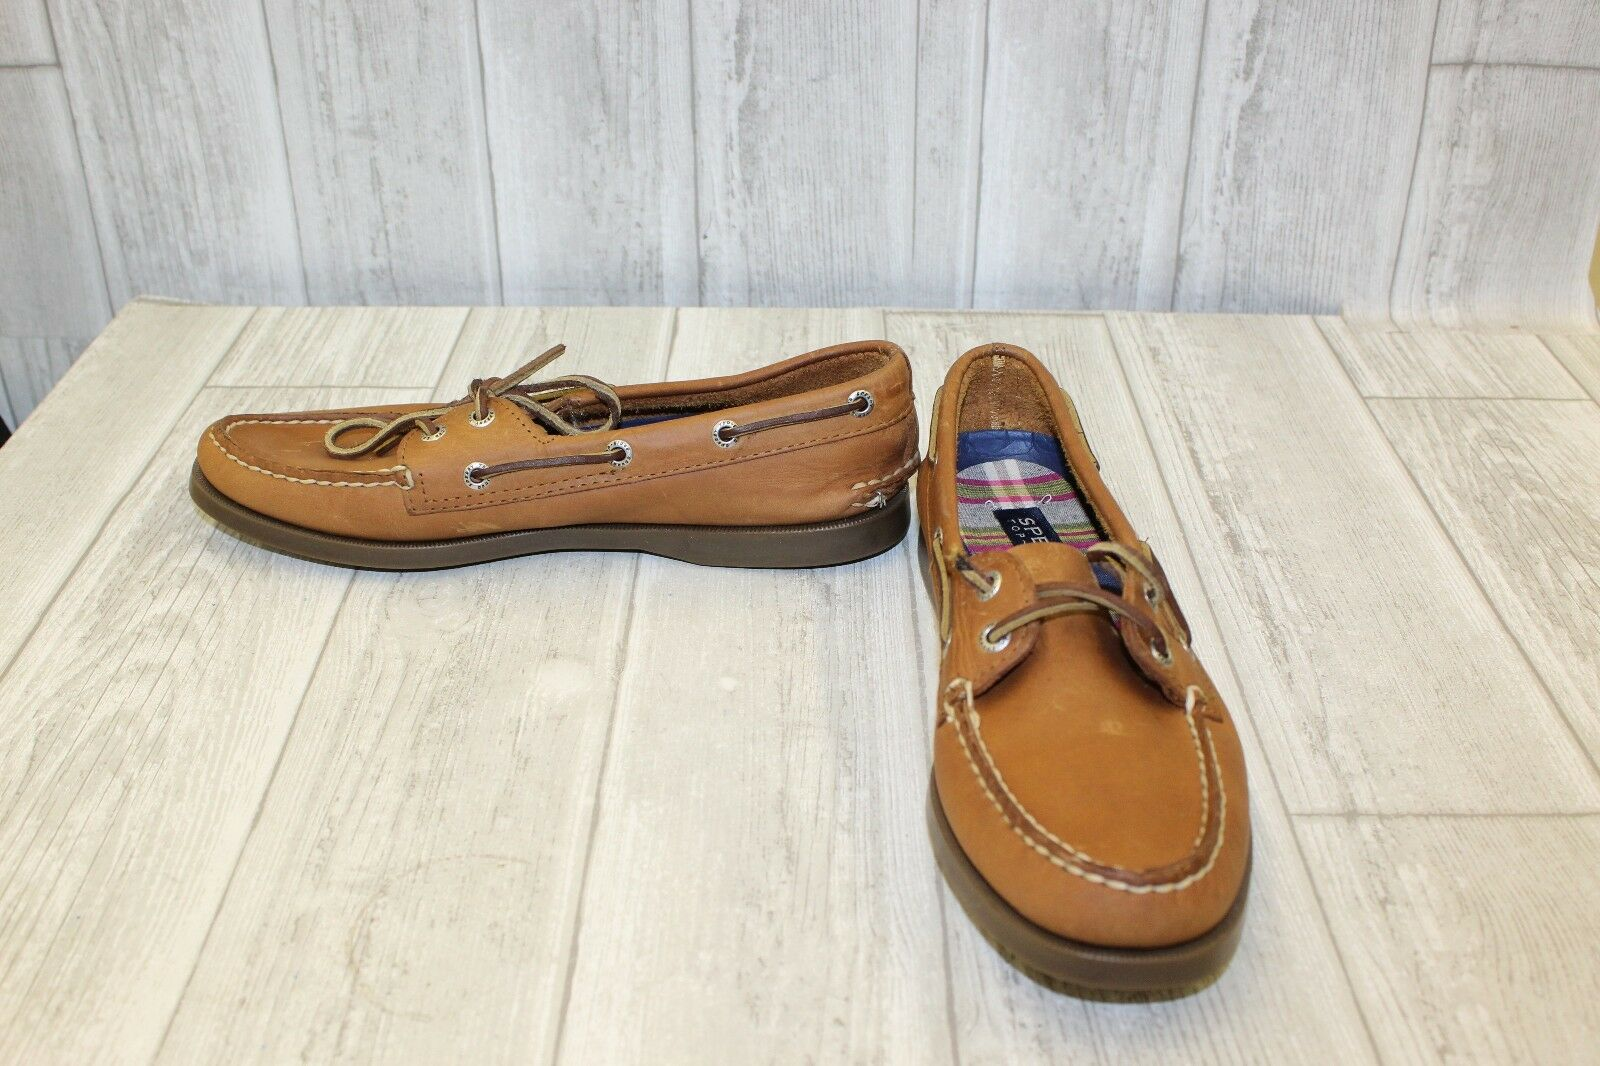 Sperry Authentic Original 2 Boat shoes - Women's Size 10S - Brown